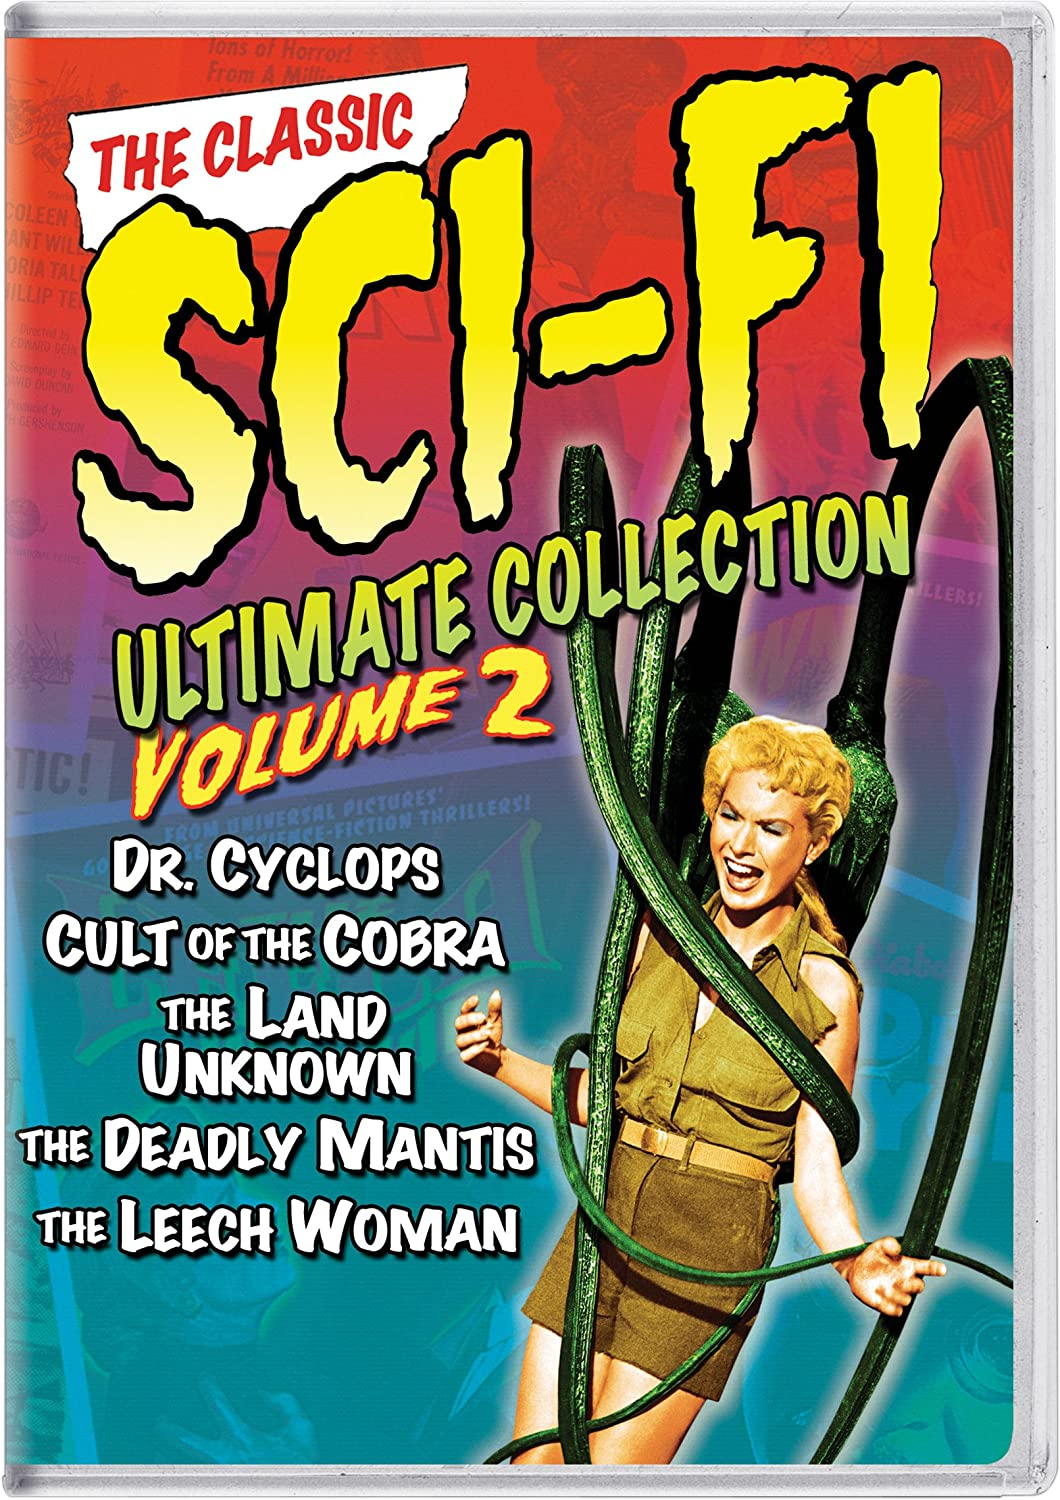 The Classic Sci-Fi Ultimate Collection: Volume 2 Dr. Cyclops / Cult of the Cobra / The Land of the Unknown / The Deadly Mantis / The Leech Woman